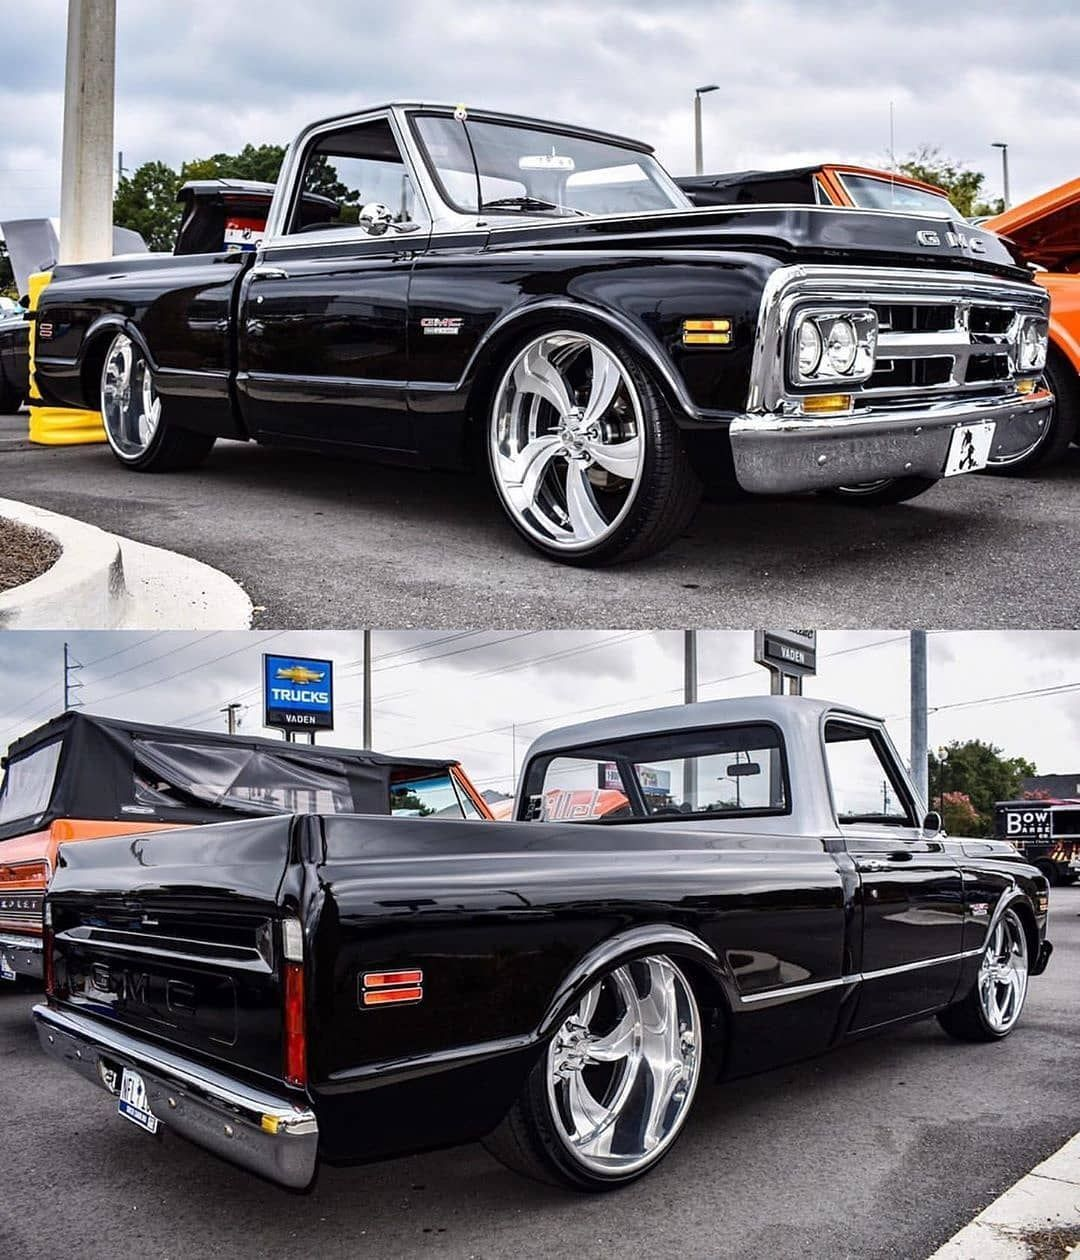 C10 Vatos On Instagram Source Teambillet Officialpage Owner El Senor Chevy C10 Chevy Chevrolet Chevyonly Trucknation Truc Chevy Classic Truck C10